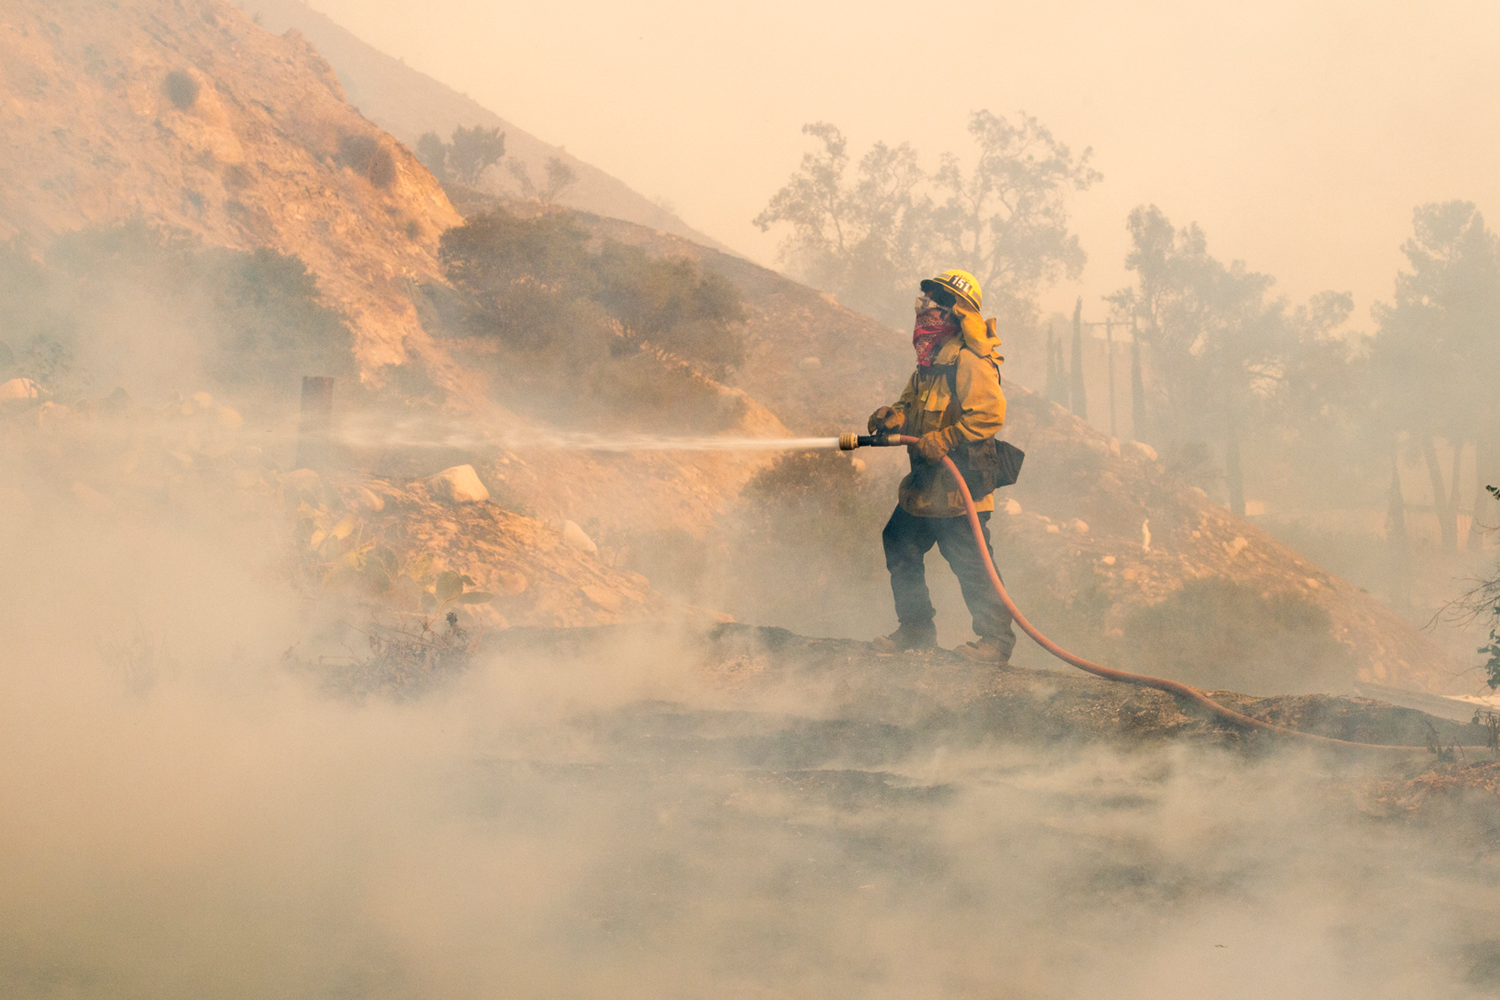 A Los Angeles County Fire Department firefighter battles the Creek Fire on Tuesday. This week's fires have been especially bad due to extreme Santa Ana winds. Image source: LA County Fire Department.